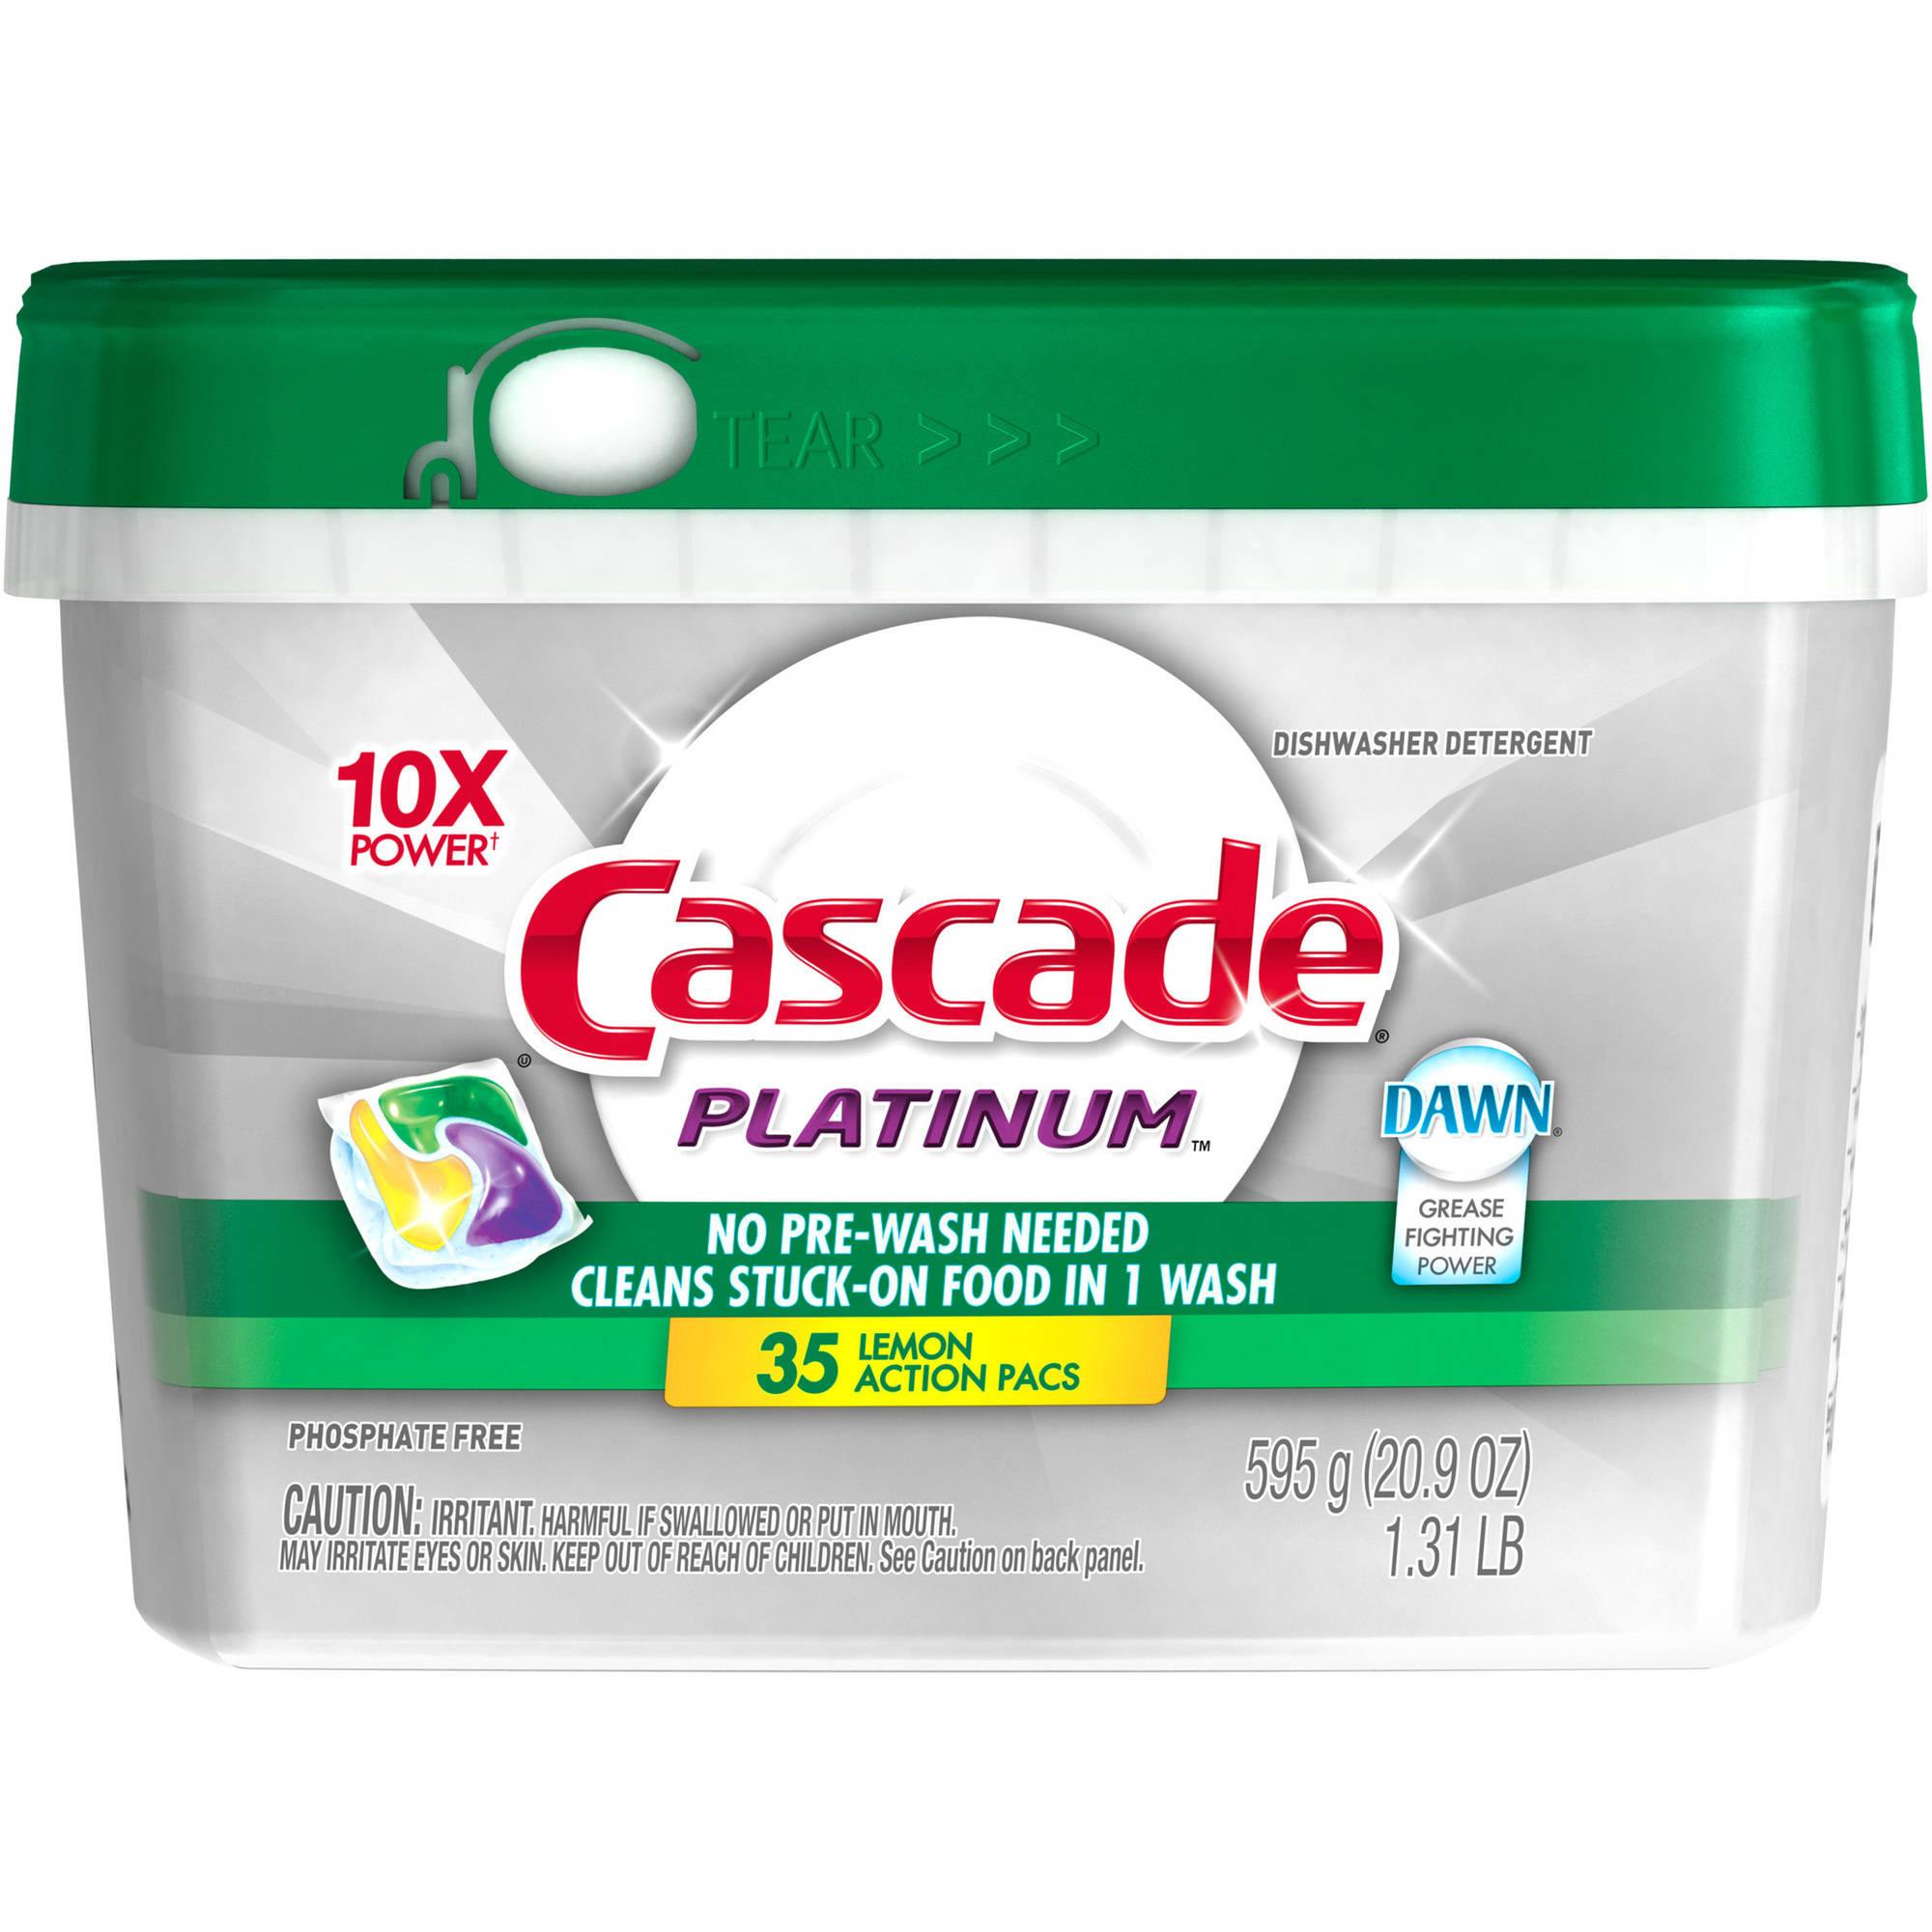 Cascade Platinum ActionPacs Dishwasher Detergent Lemon Burst (choose your size)